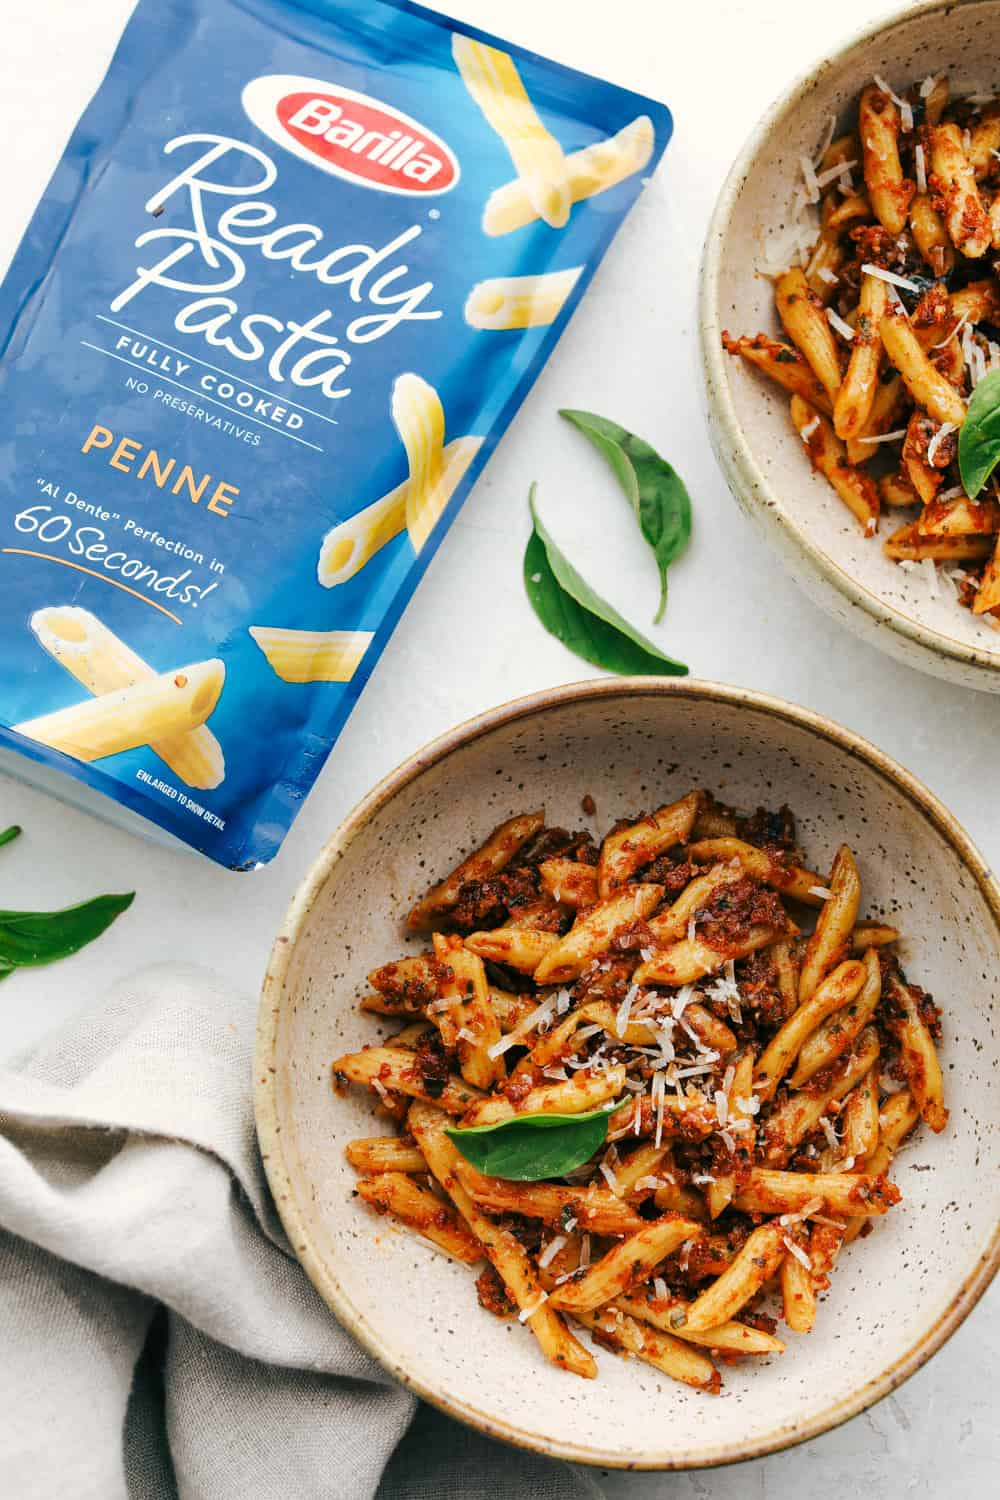 Sun dried tomato pesto pasta in a bowl with the barilla ready pasta on the side in the bag.